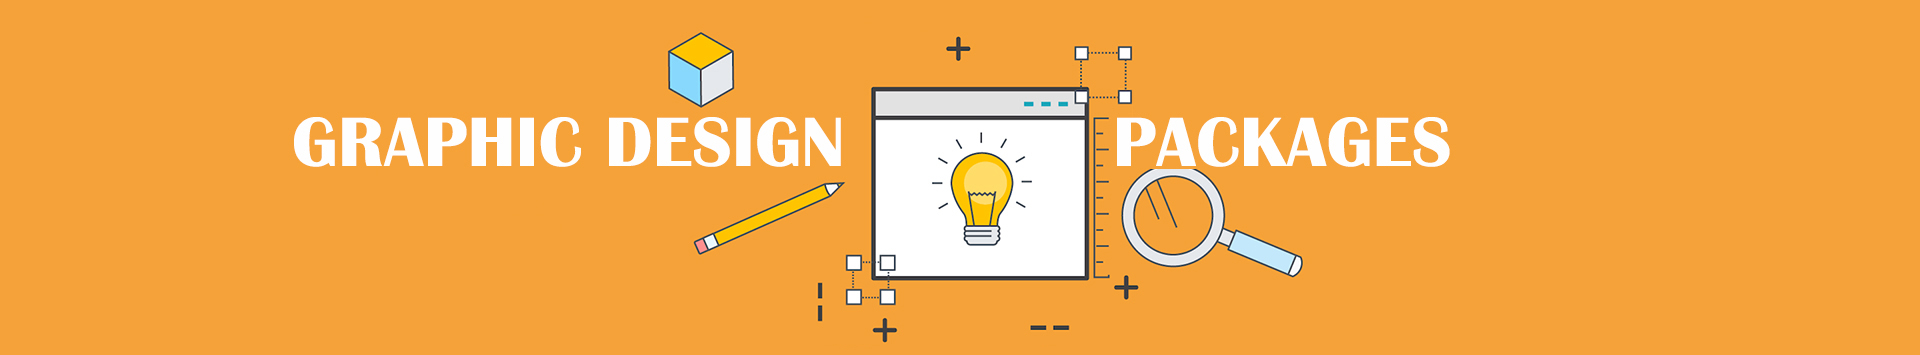 graphic design packages proweb